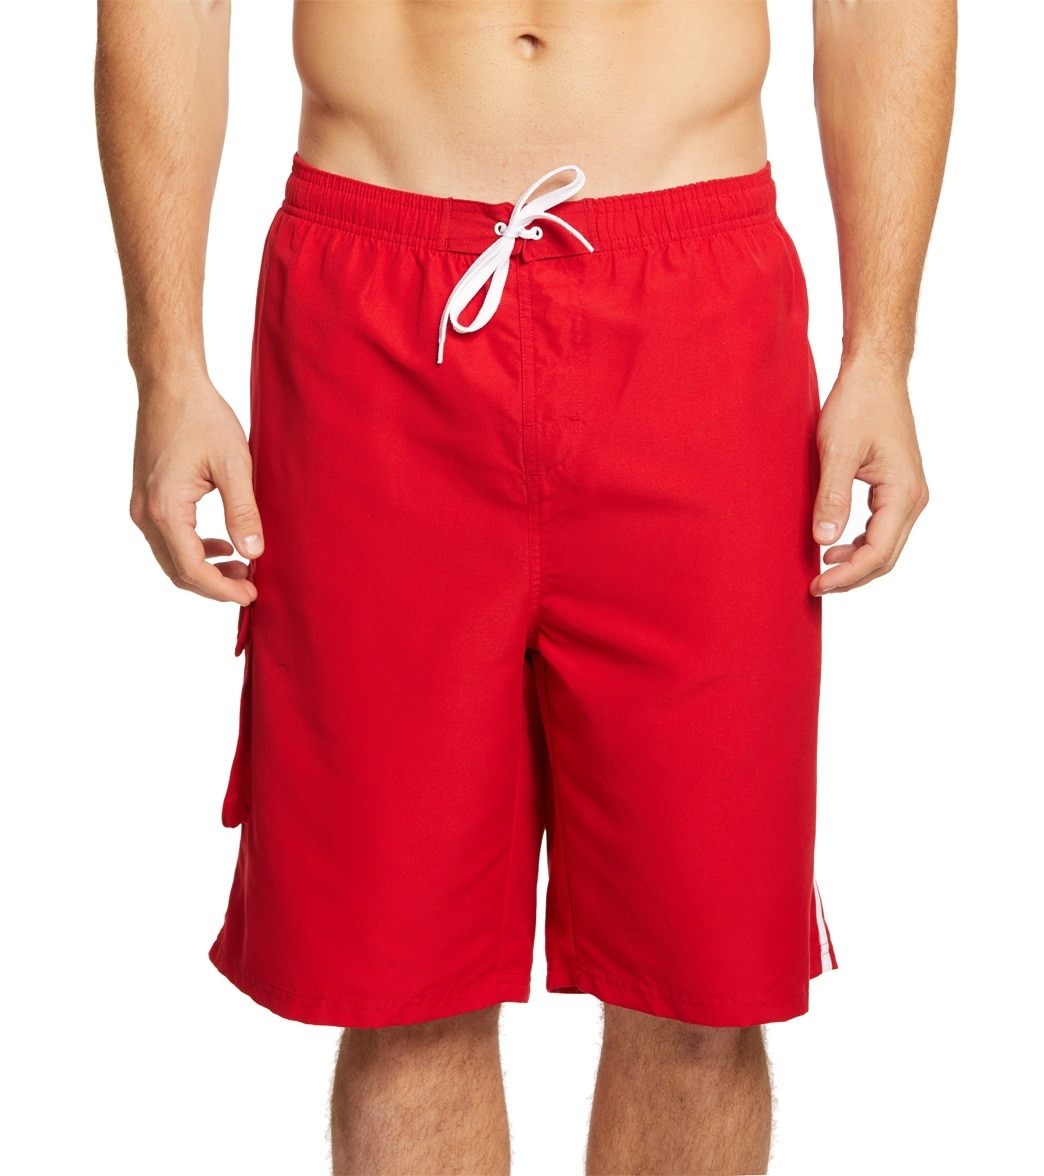 820f35bdbf Men's Lifeguard Suits at SwimOutlet.com